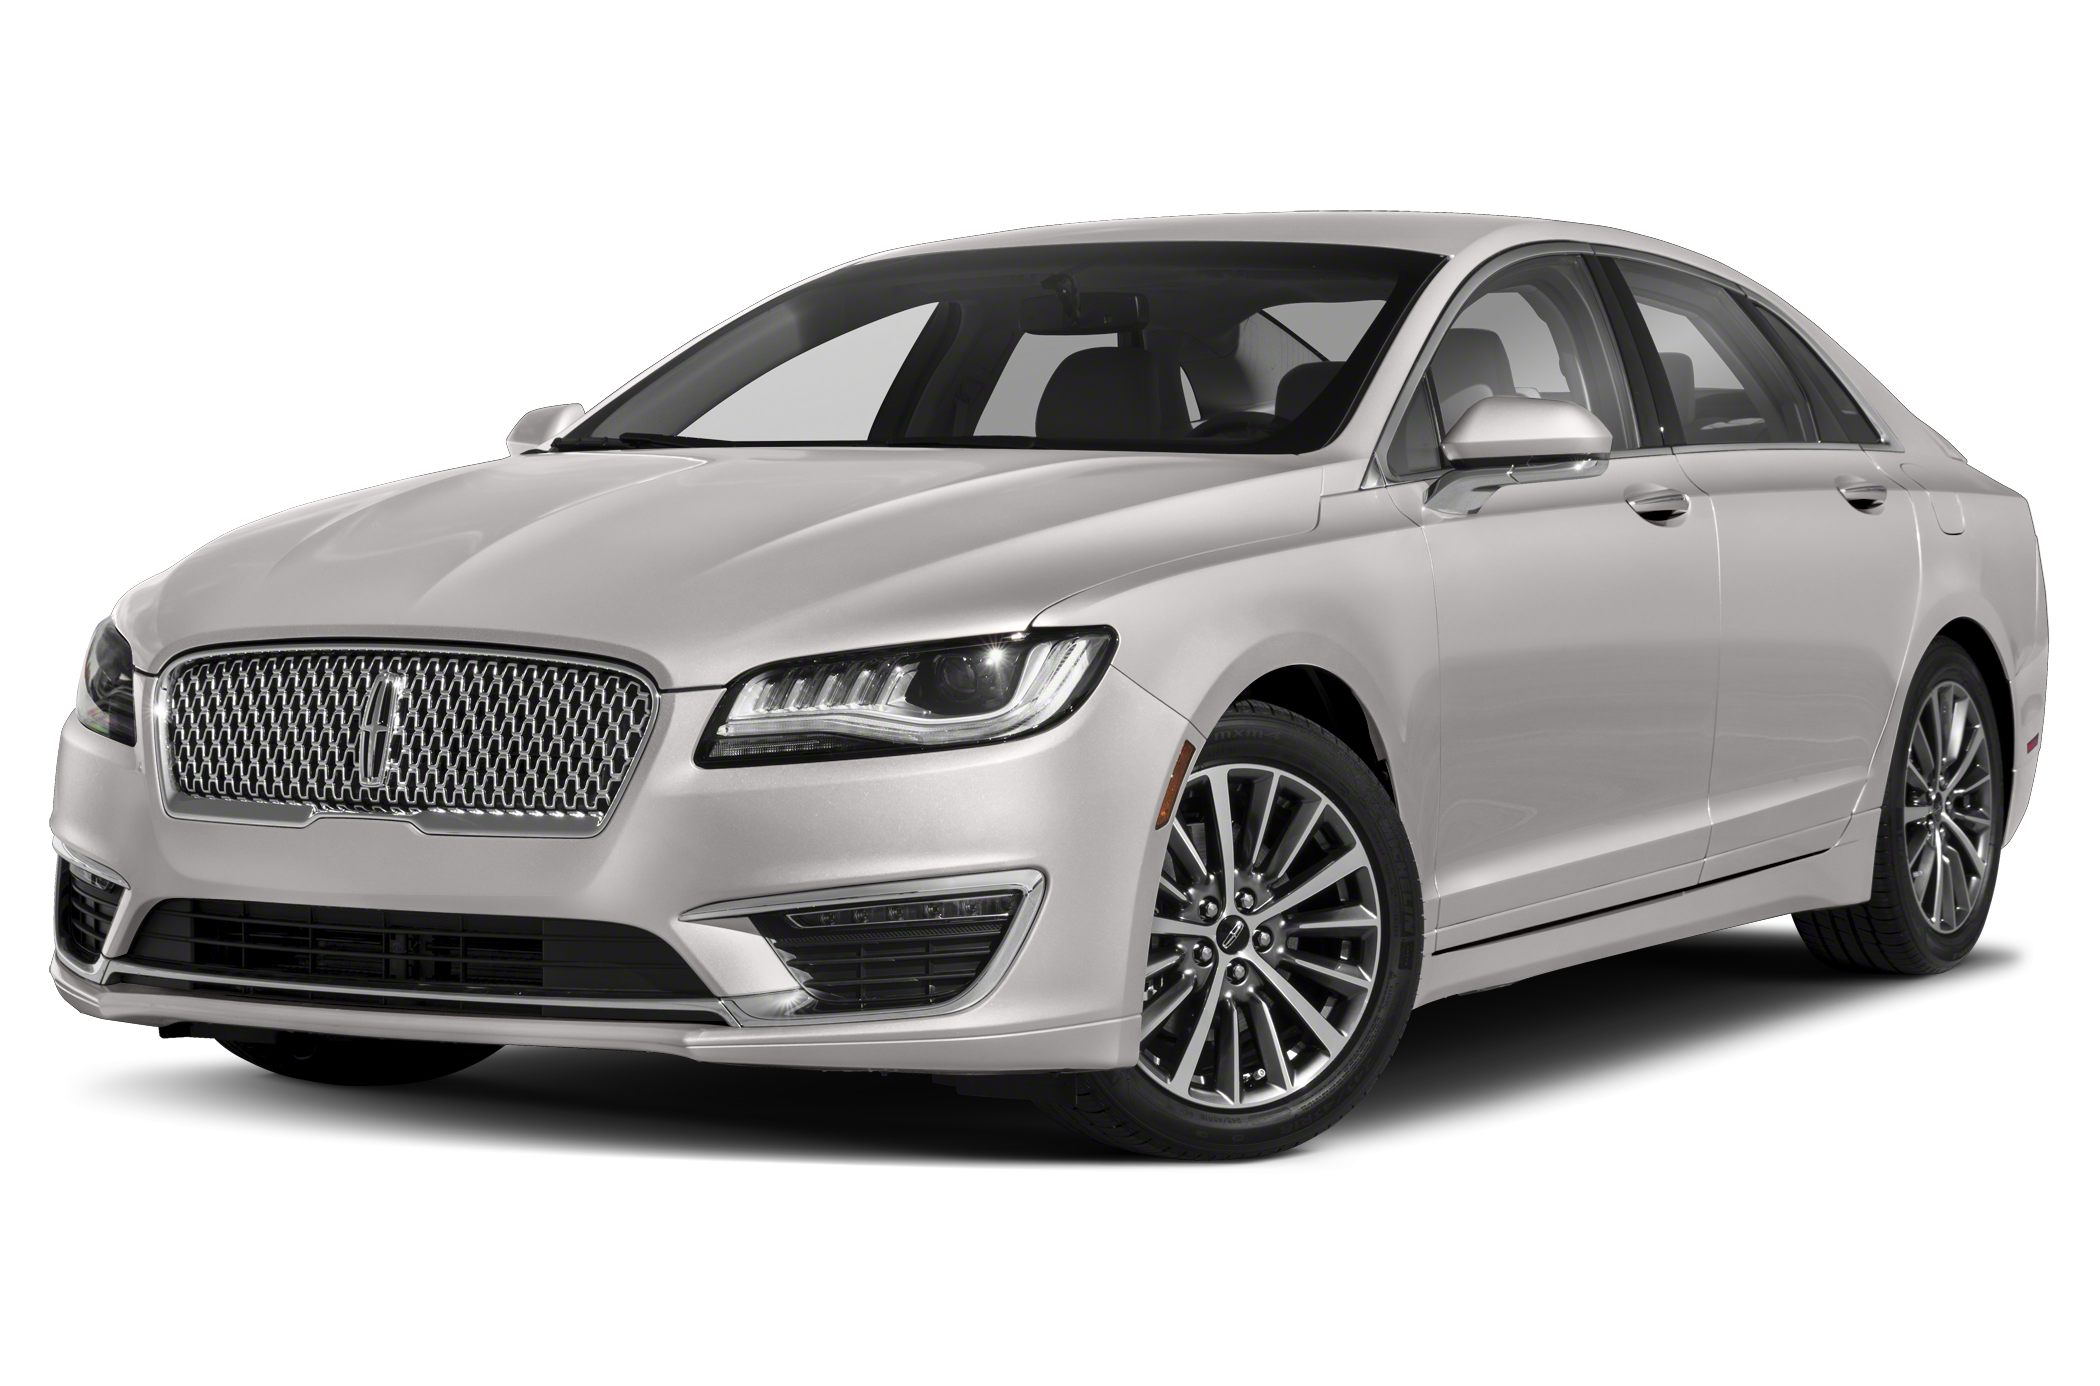 lincoln mkz hybrid rated at 45 mpg below 47 mpg fusion hybrid autoblog. Black Bedroom Furniture Sets. Home Design Ideas